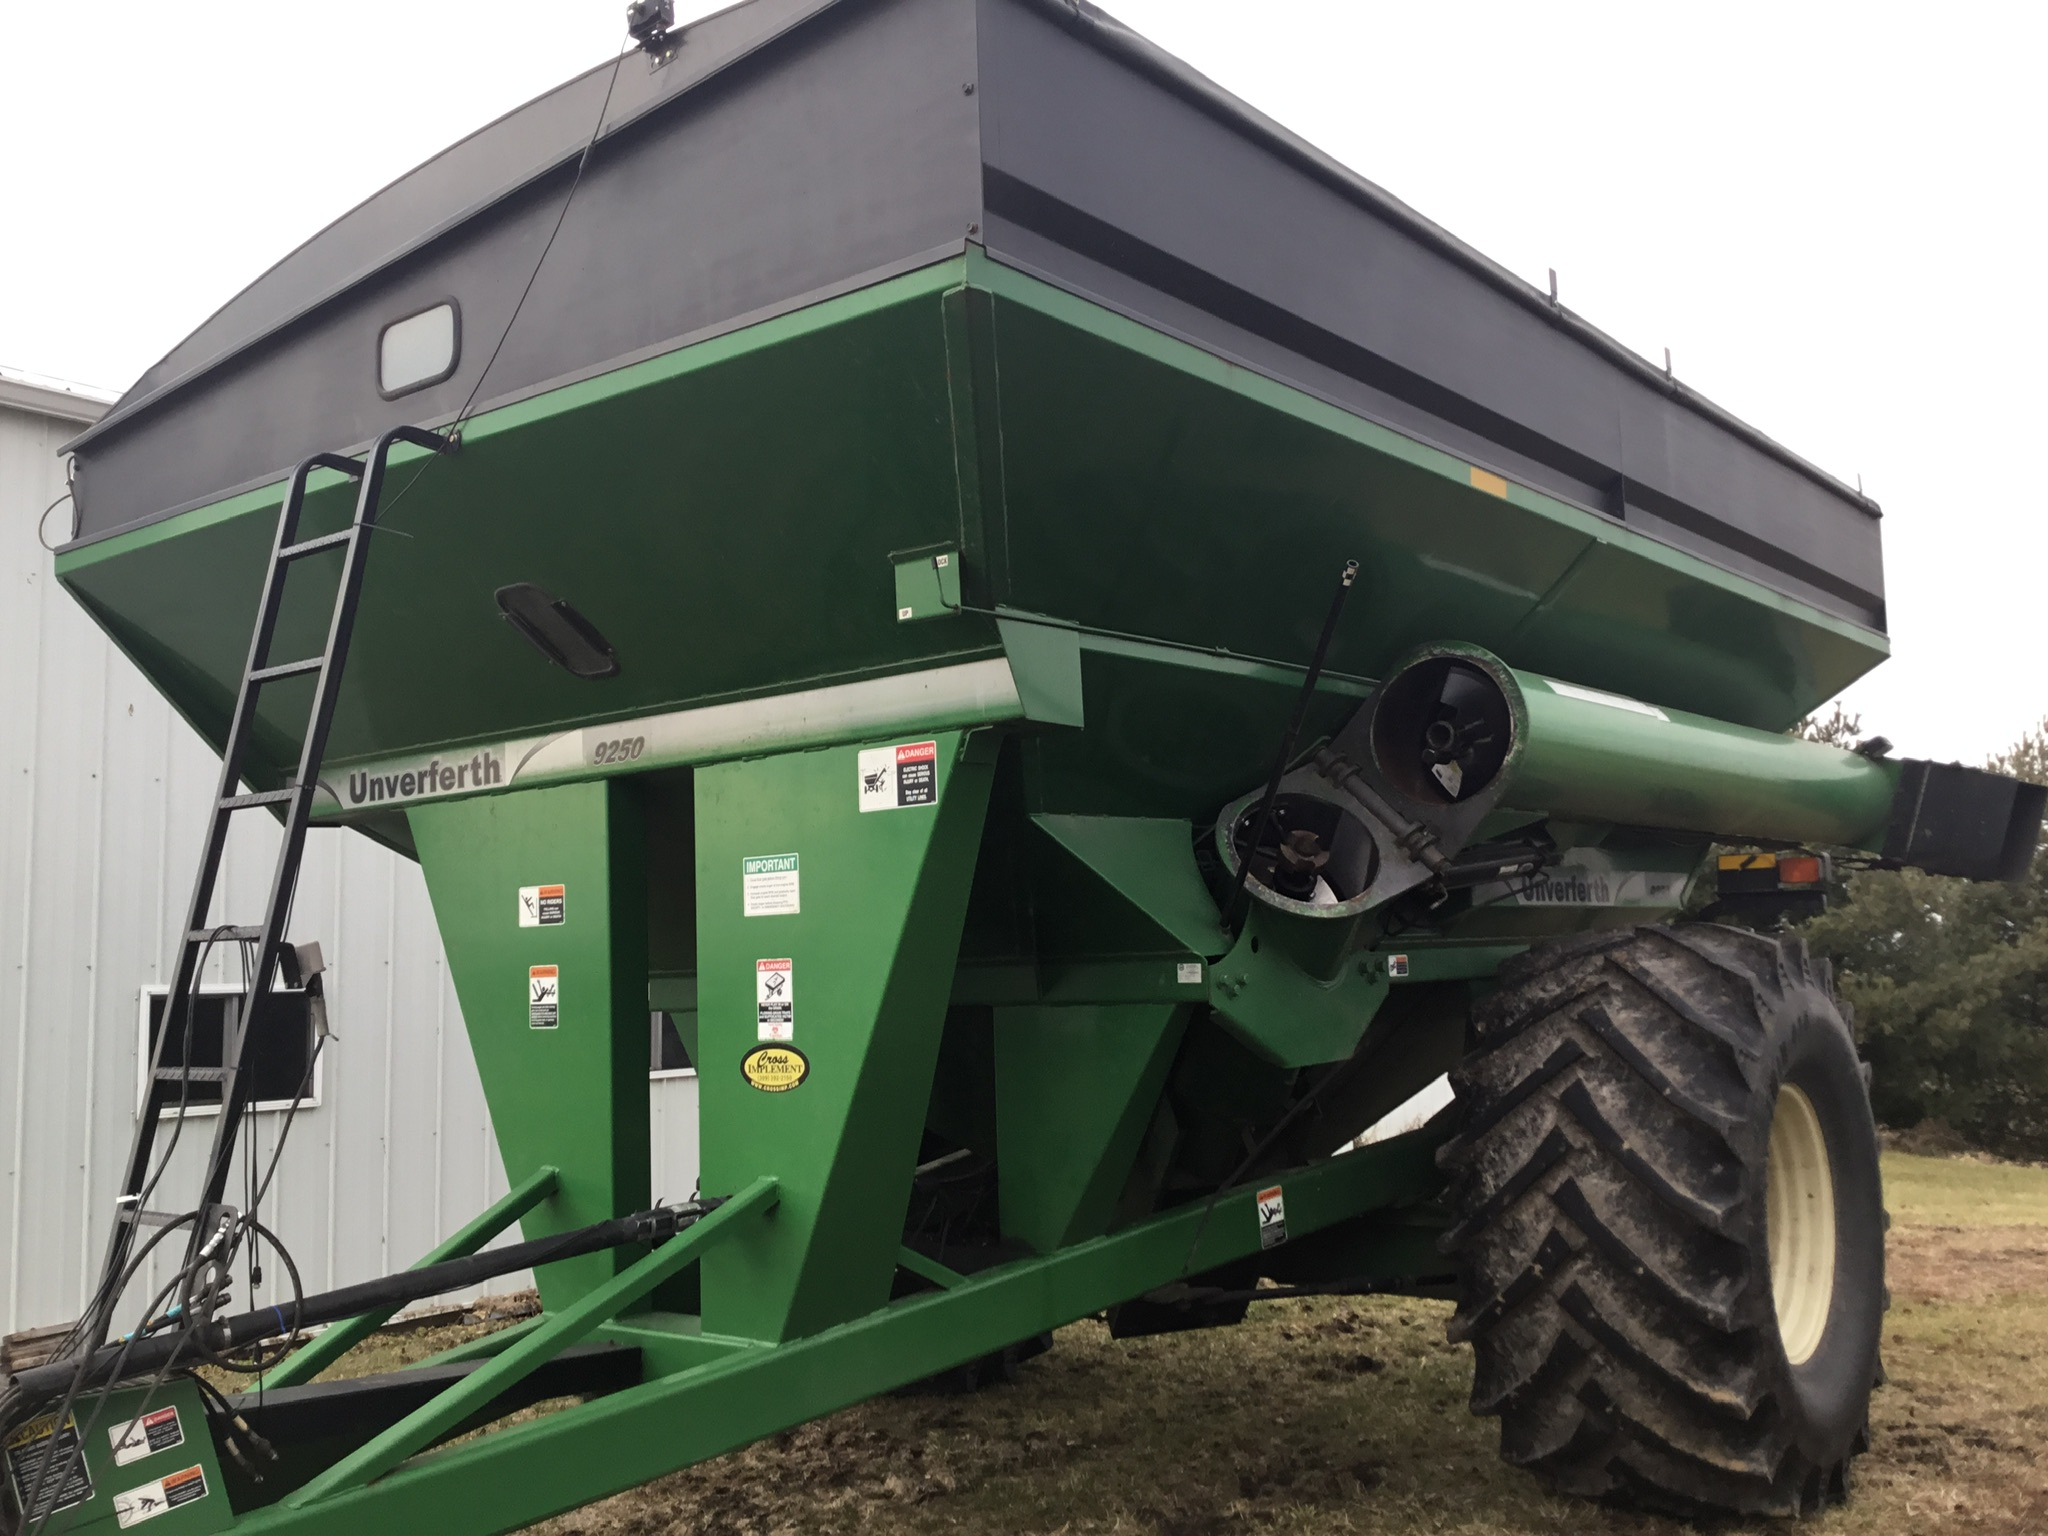 2009 Unverferth 9250 1,000 Bu. Auger Cart, Hydraulic Spout, 3 Cameras, Roll Tarp, New Augers, 900- - Image 10 of 15